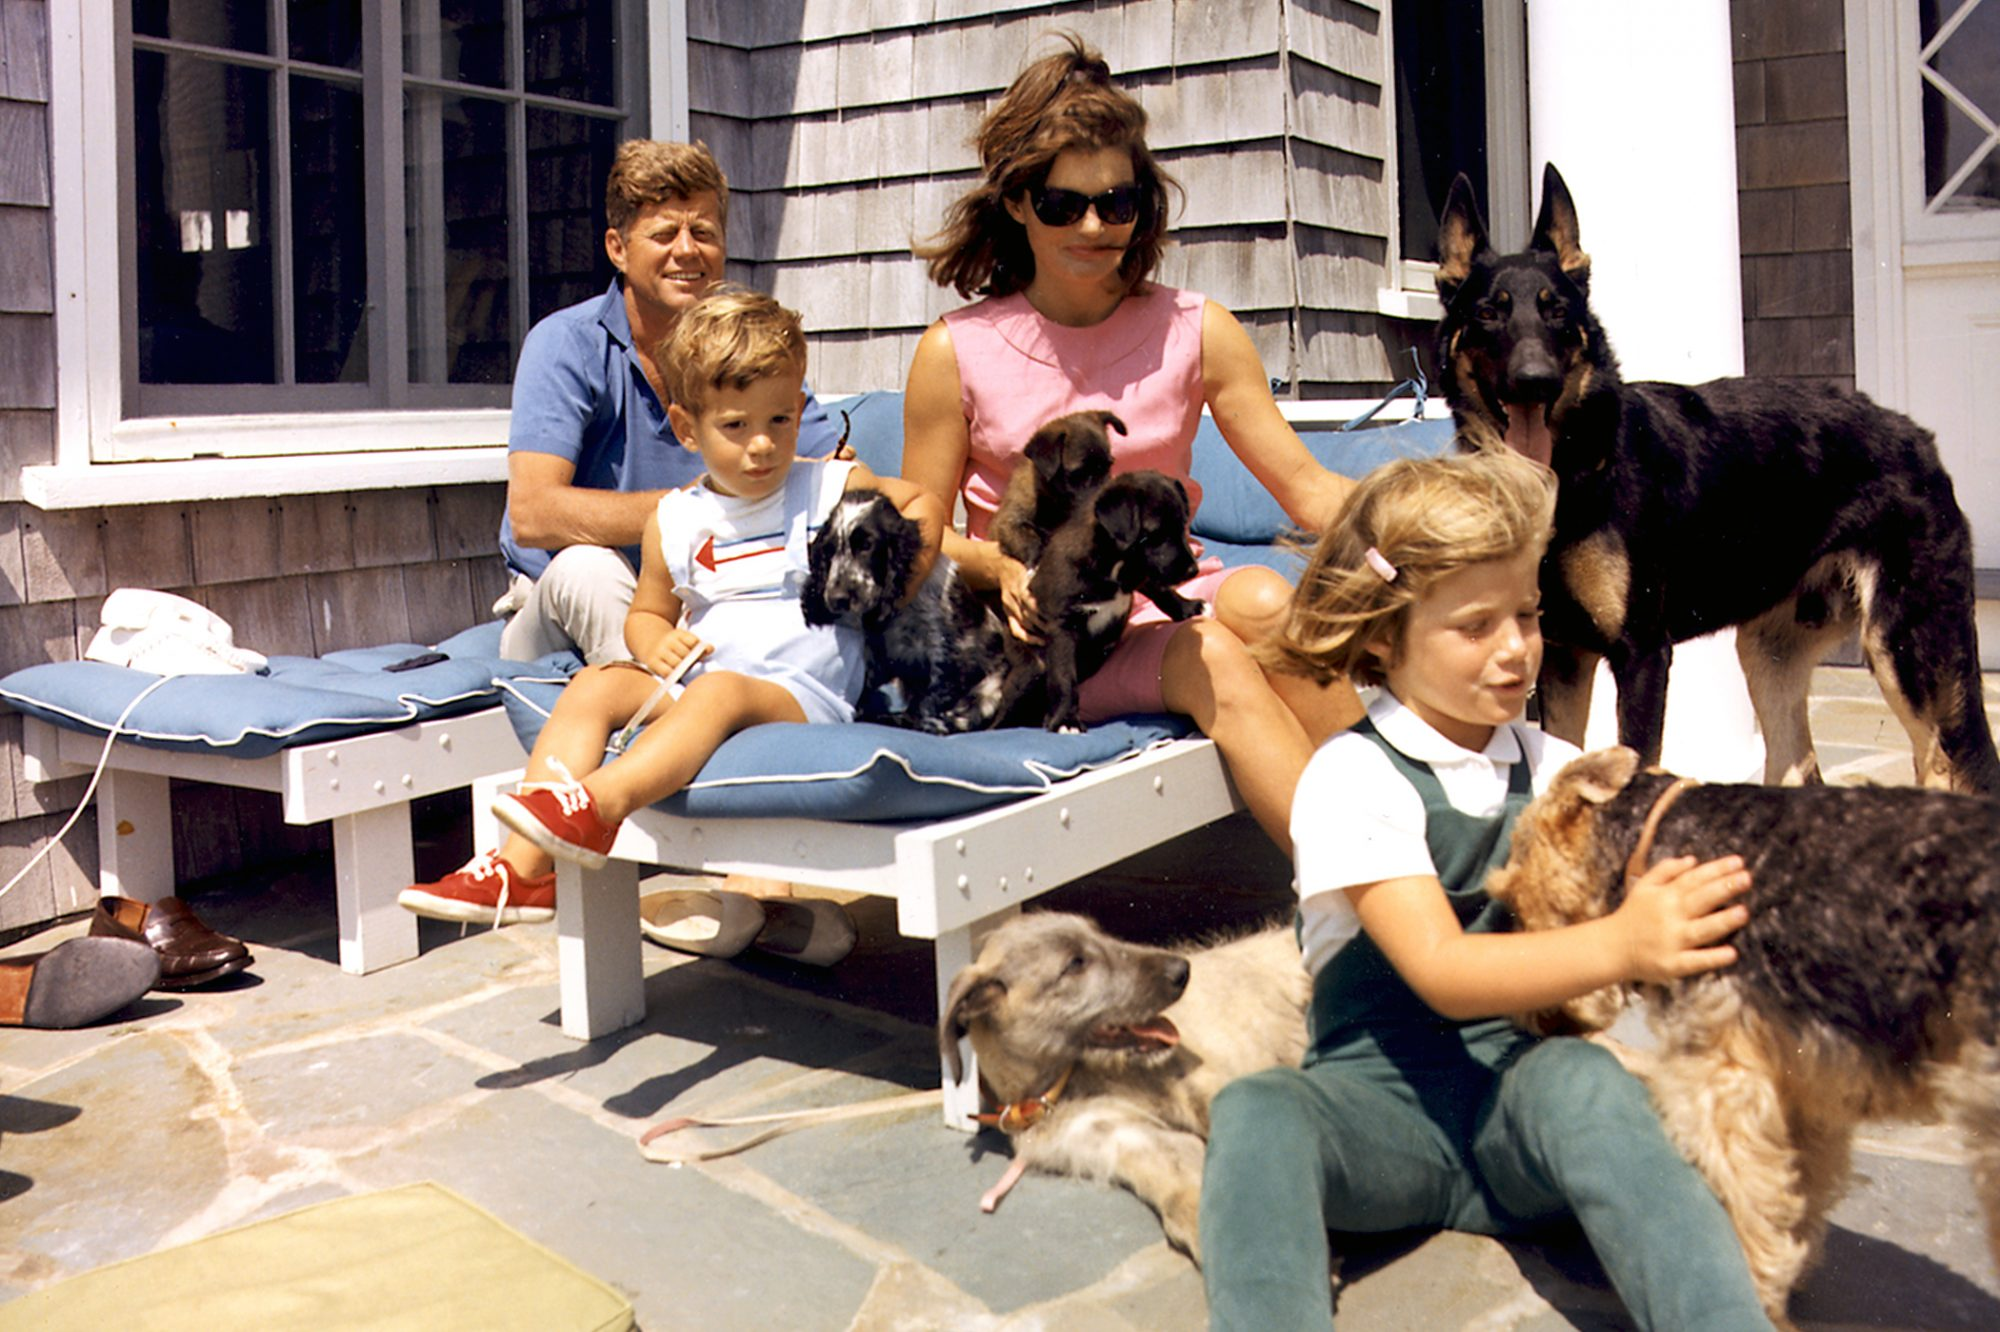 Photograph of John F. Kennedy enjoying his family and various dogs on a sunny day